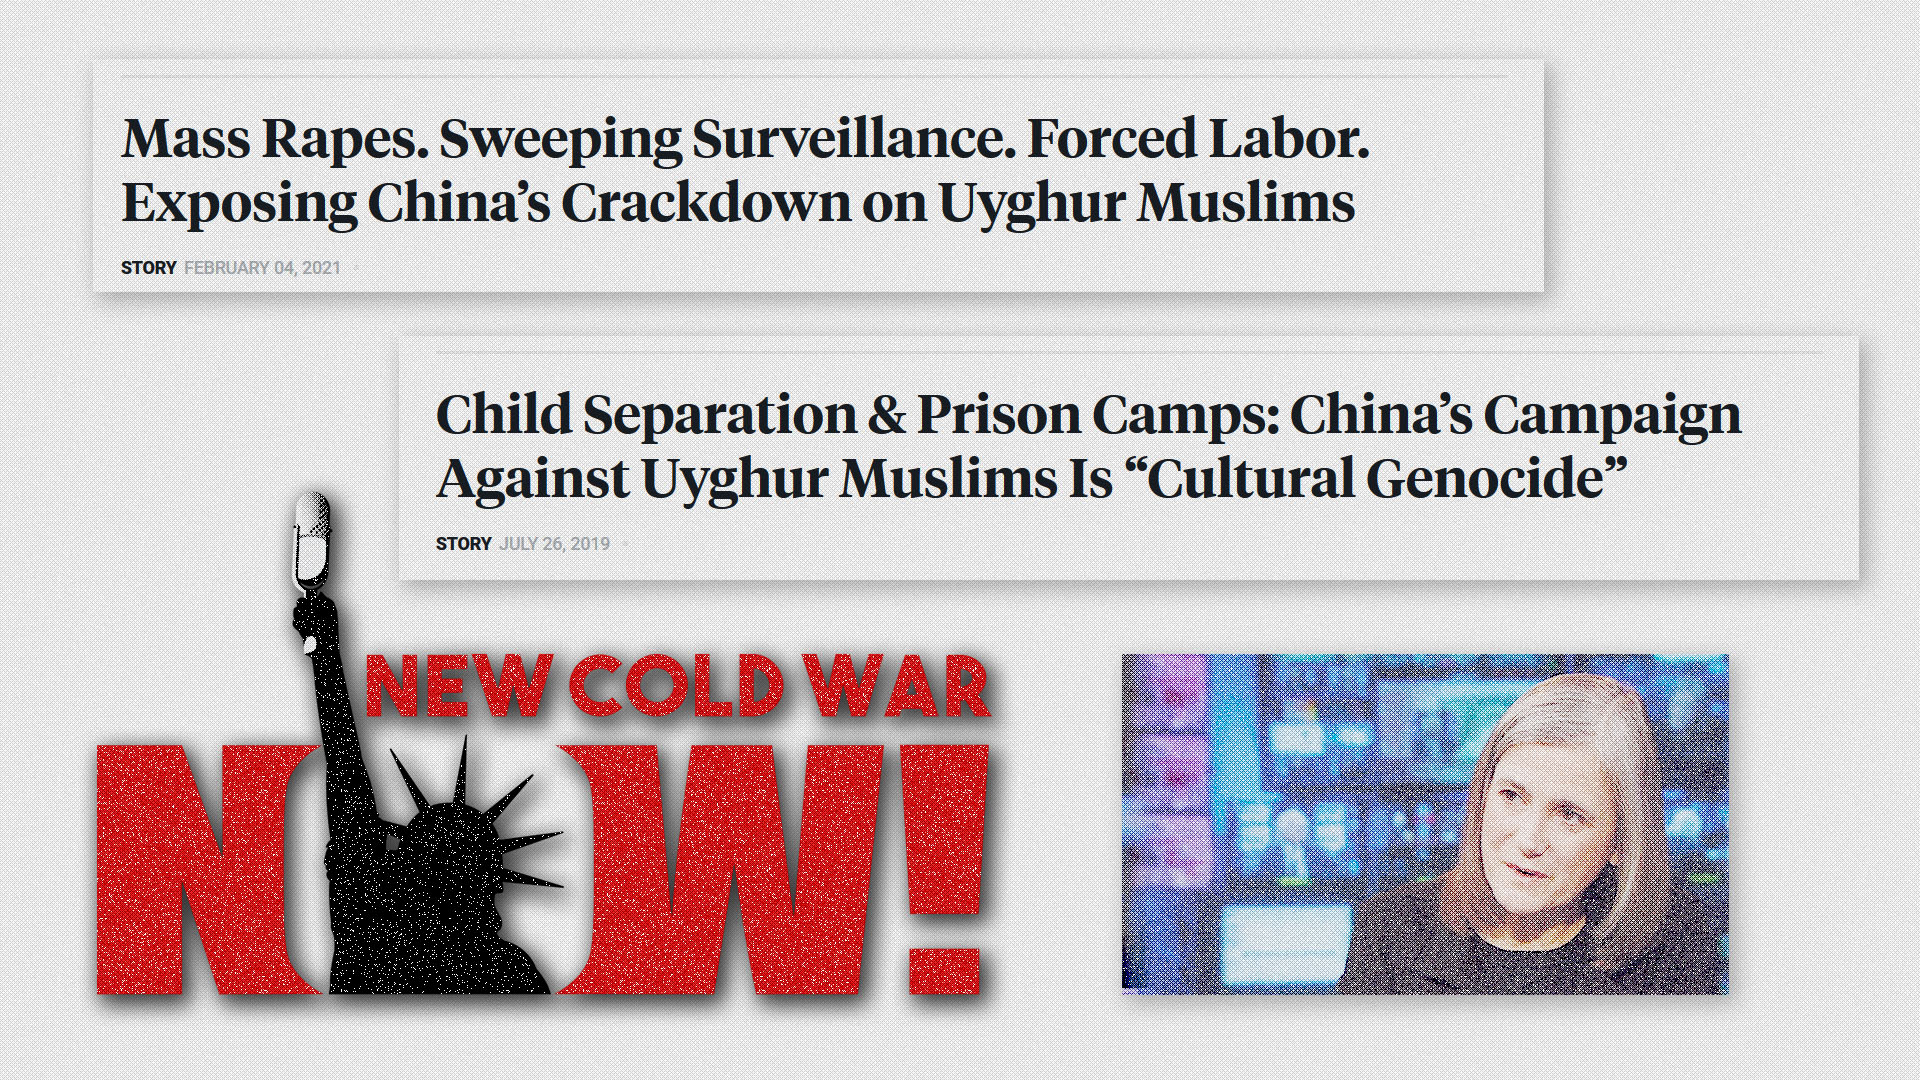 Democracy Now amplifies State Department propaganda campaign against China behind progressive cover | The Grayzone